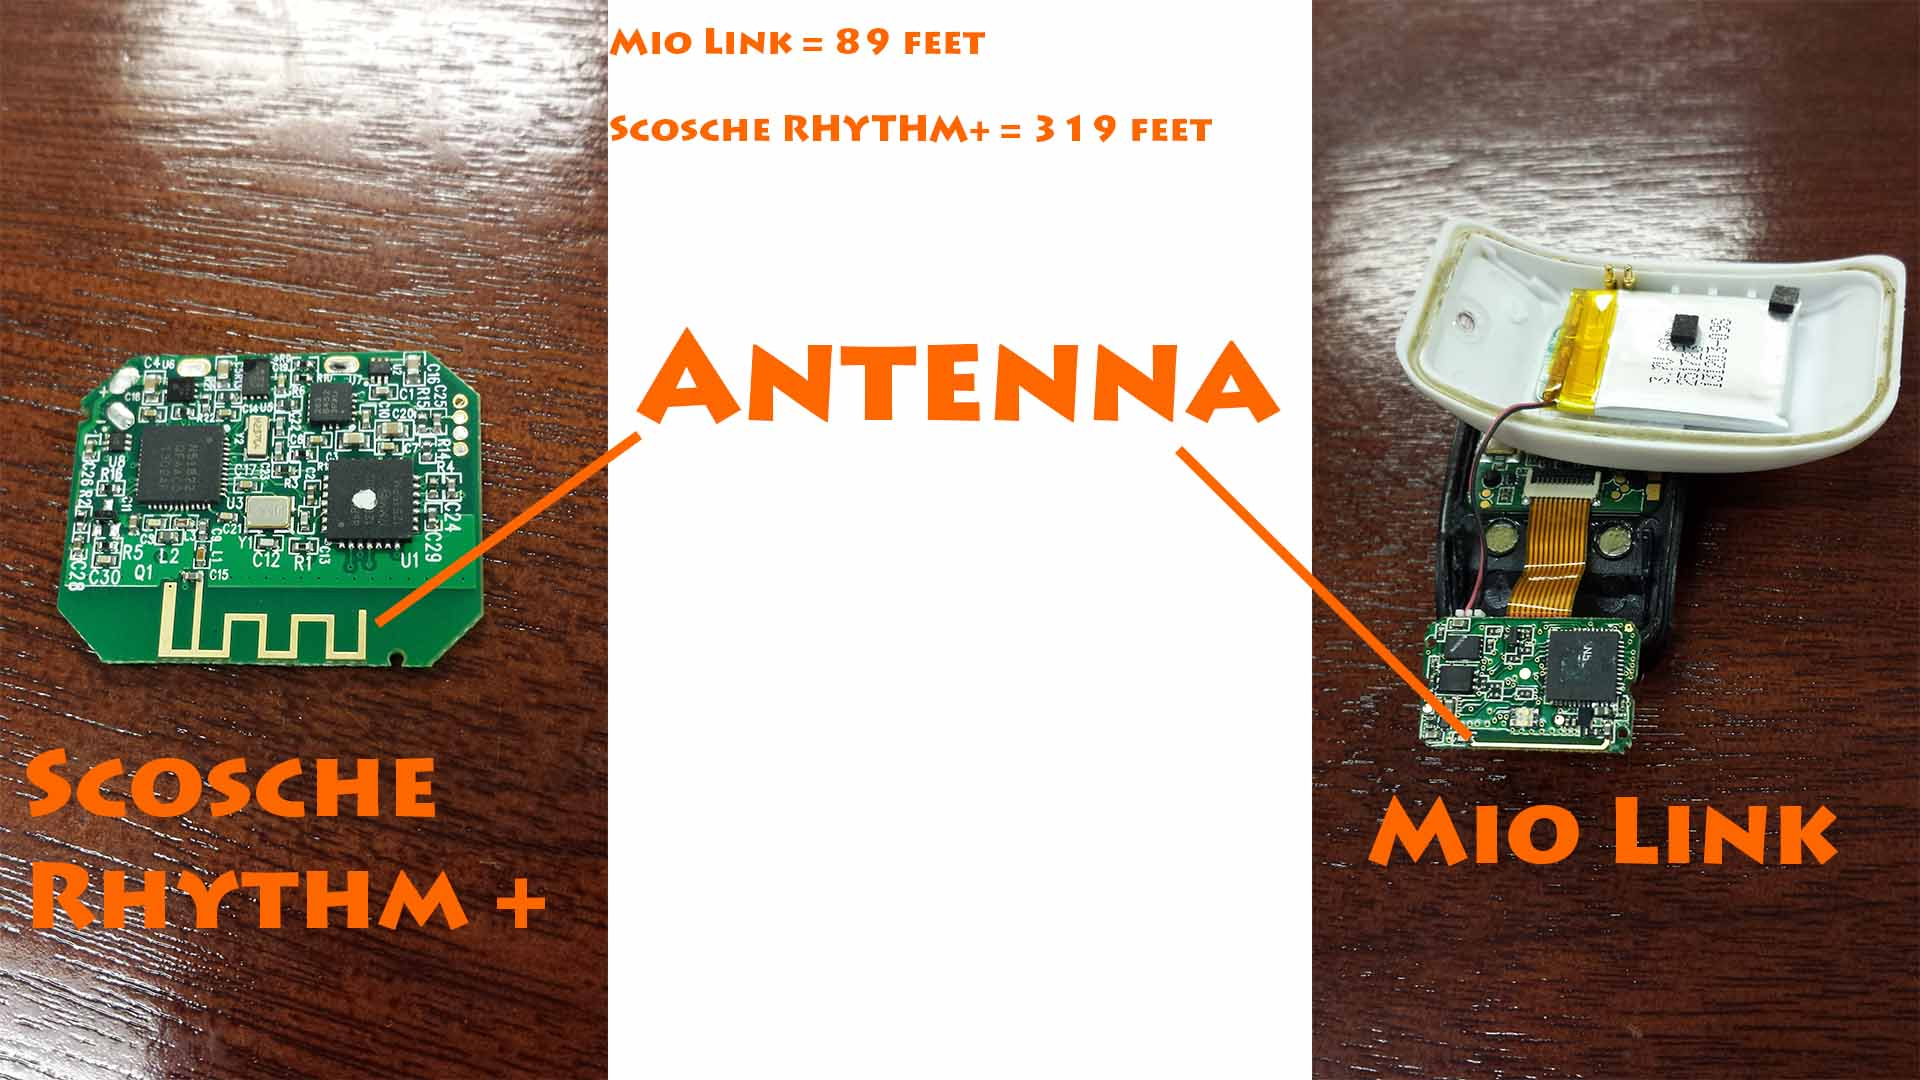 When you take the hardware apart, you can see a clear difference in the pcb footprint of Bluetooth antenna between the Scosche Rhtythm+ and the Mio Link. This could account for the poor performance of the Mio Link.